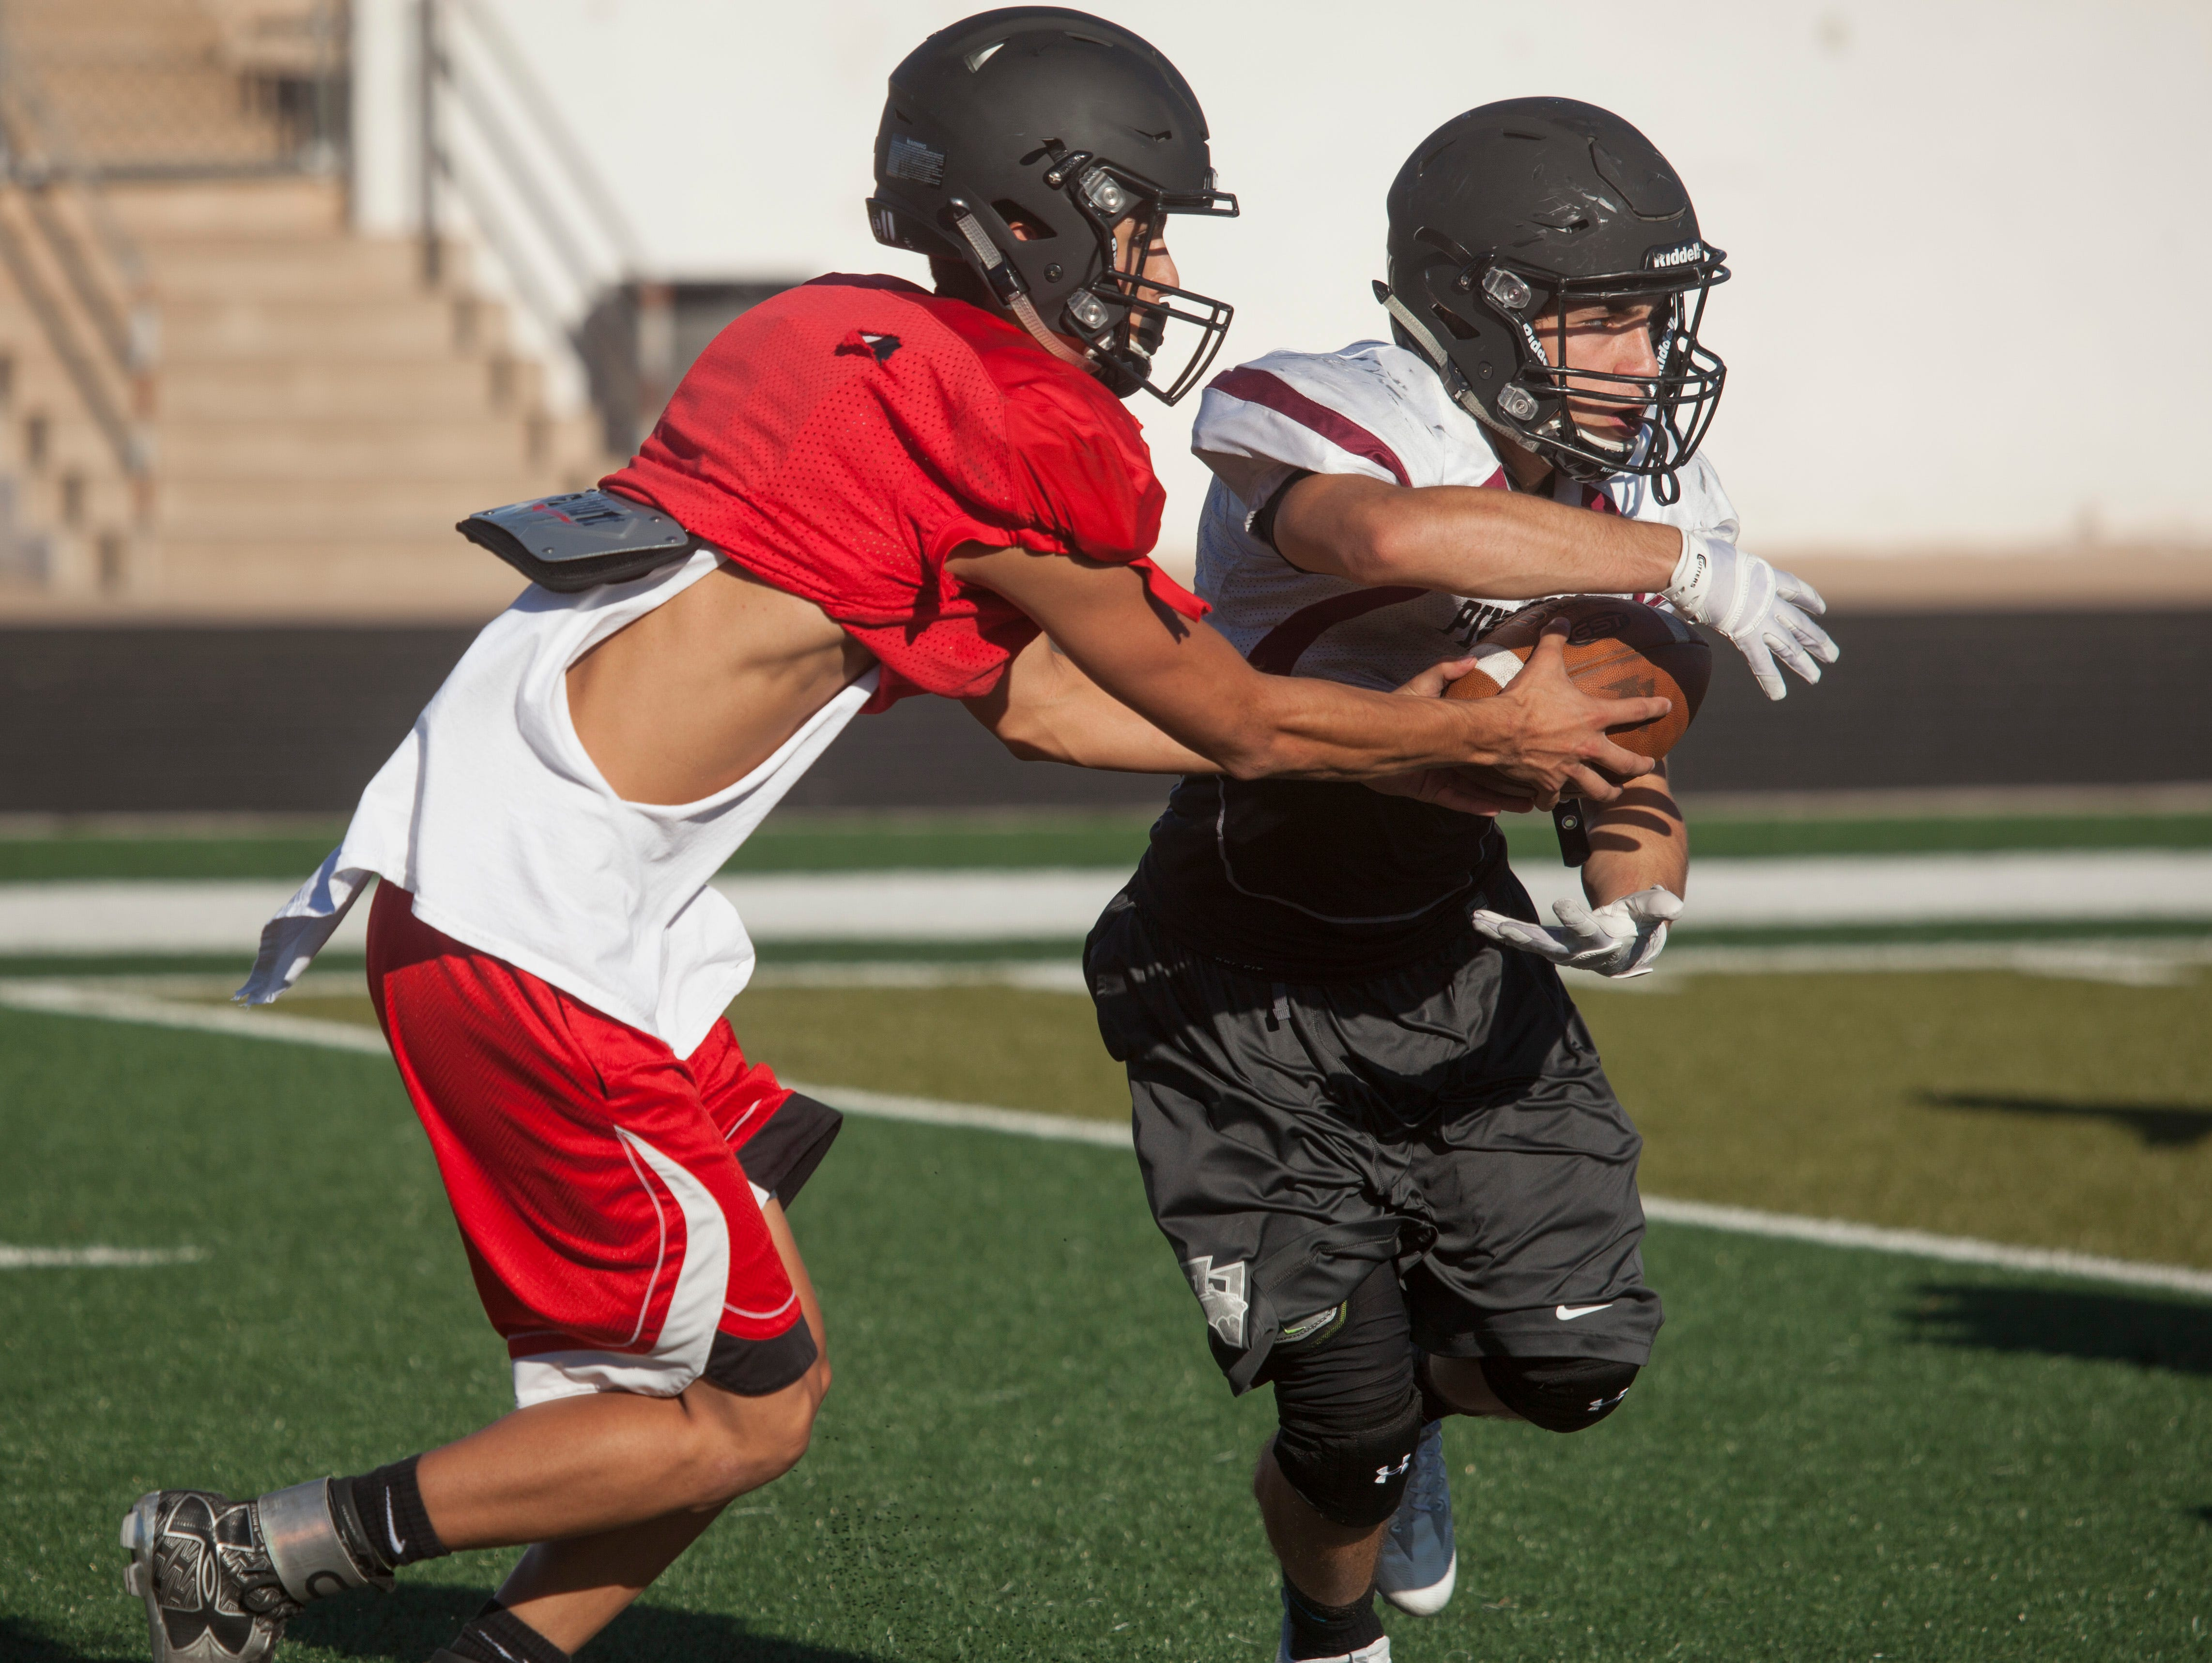 The Pine View High School football team practices for the upcoming season Tuesday, August 16, 2016.